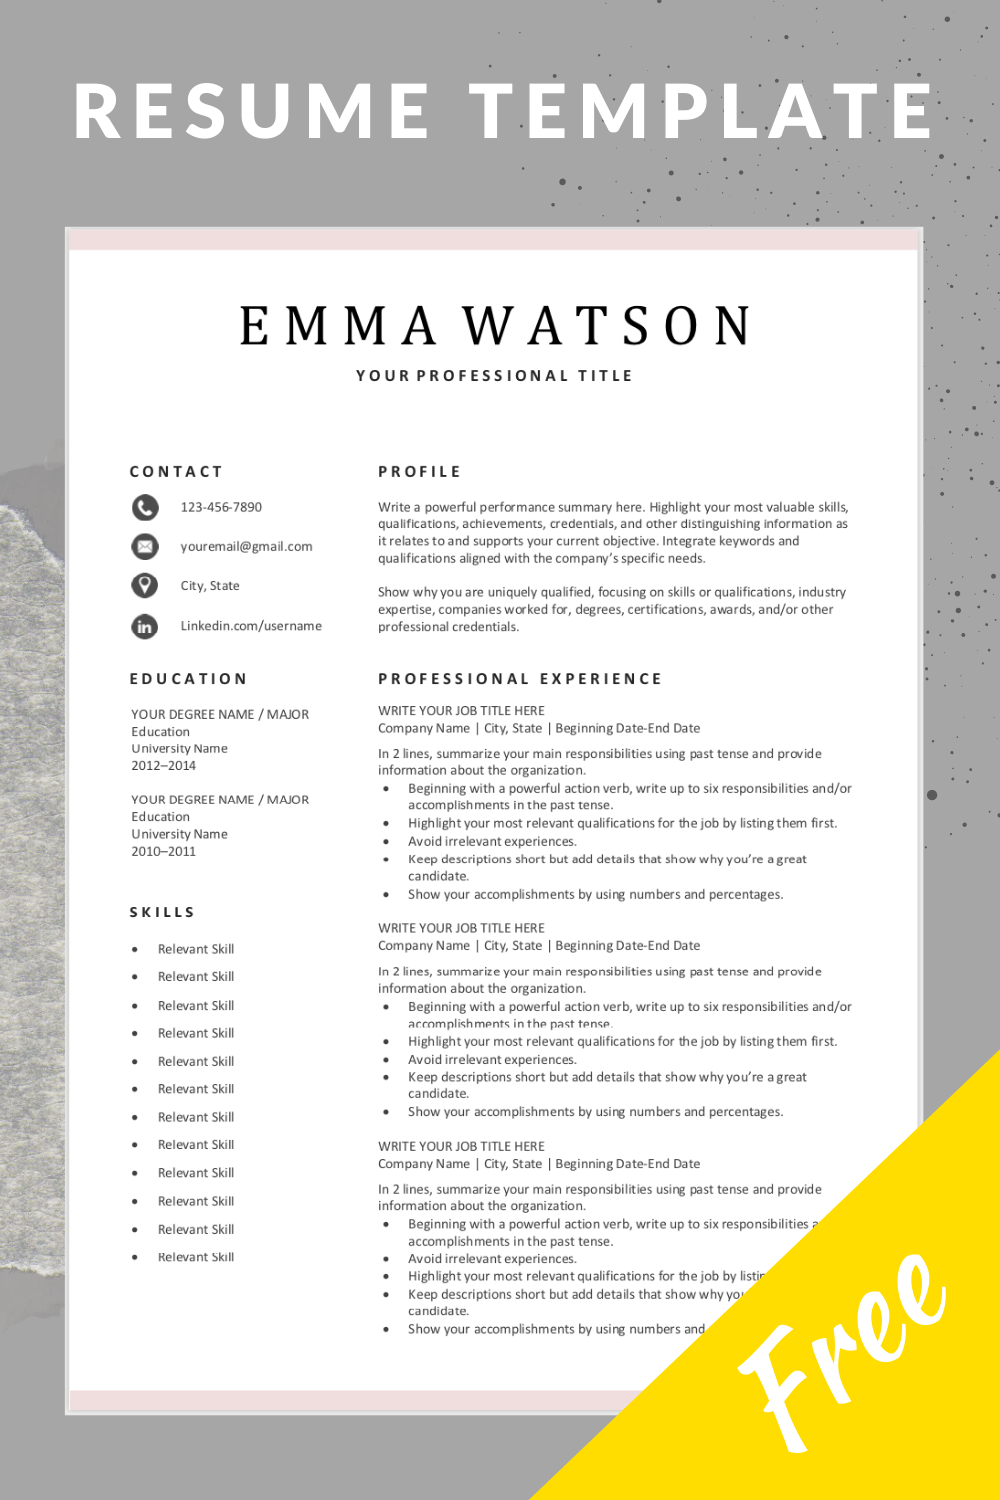 Simple Resume Template Download For Free In 2020 Job Resume